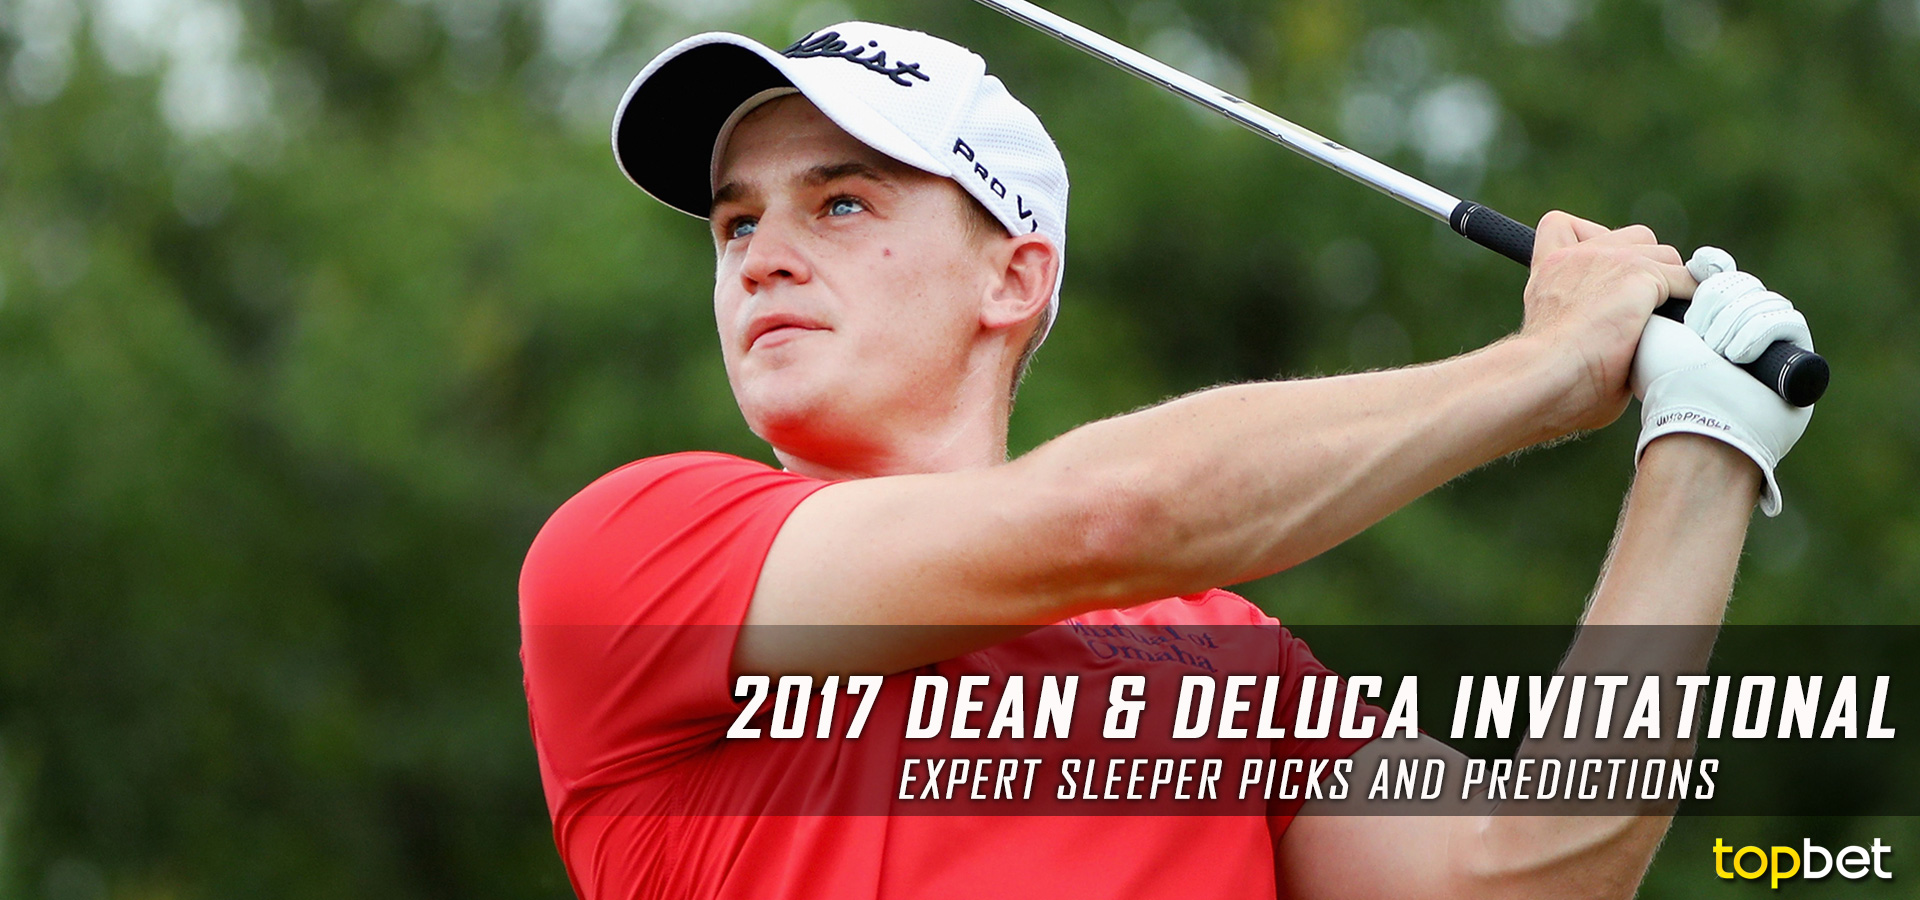 2017 Dean & DeLuca Invitational Expert Sleeper Picks and Predictions